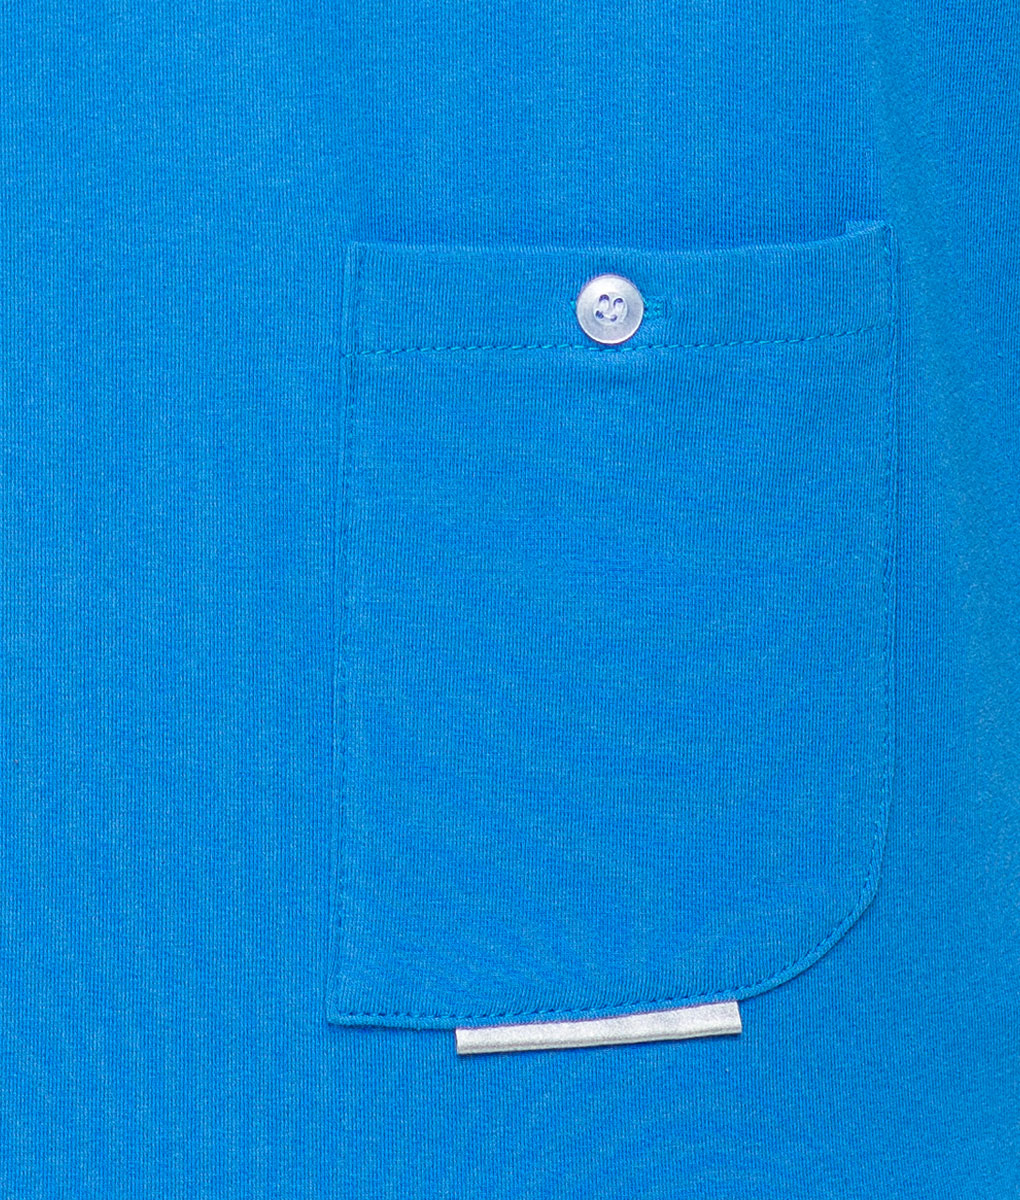 casual-cycling-clothing-button-blue-tee-pocket-detail